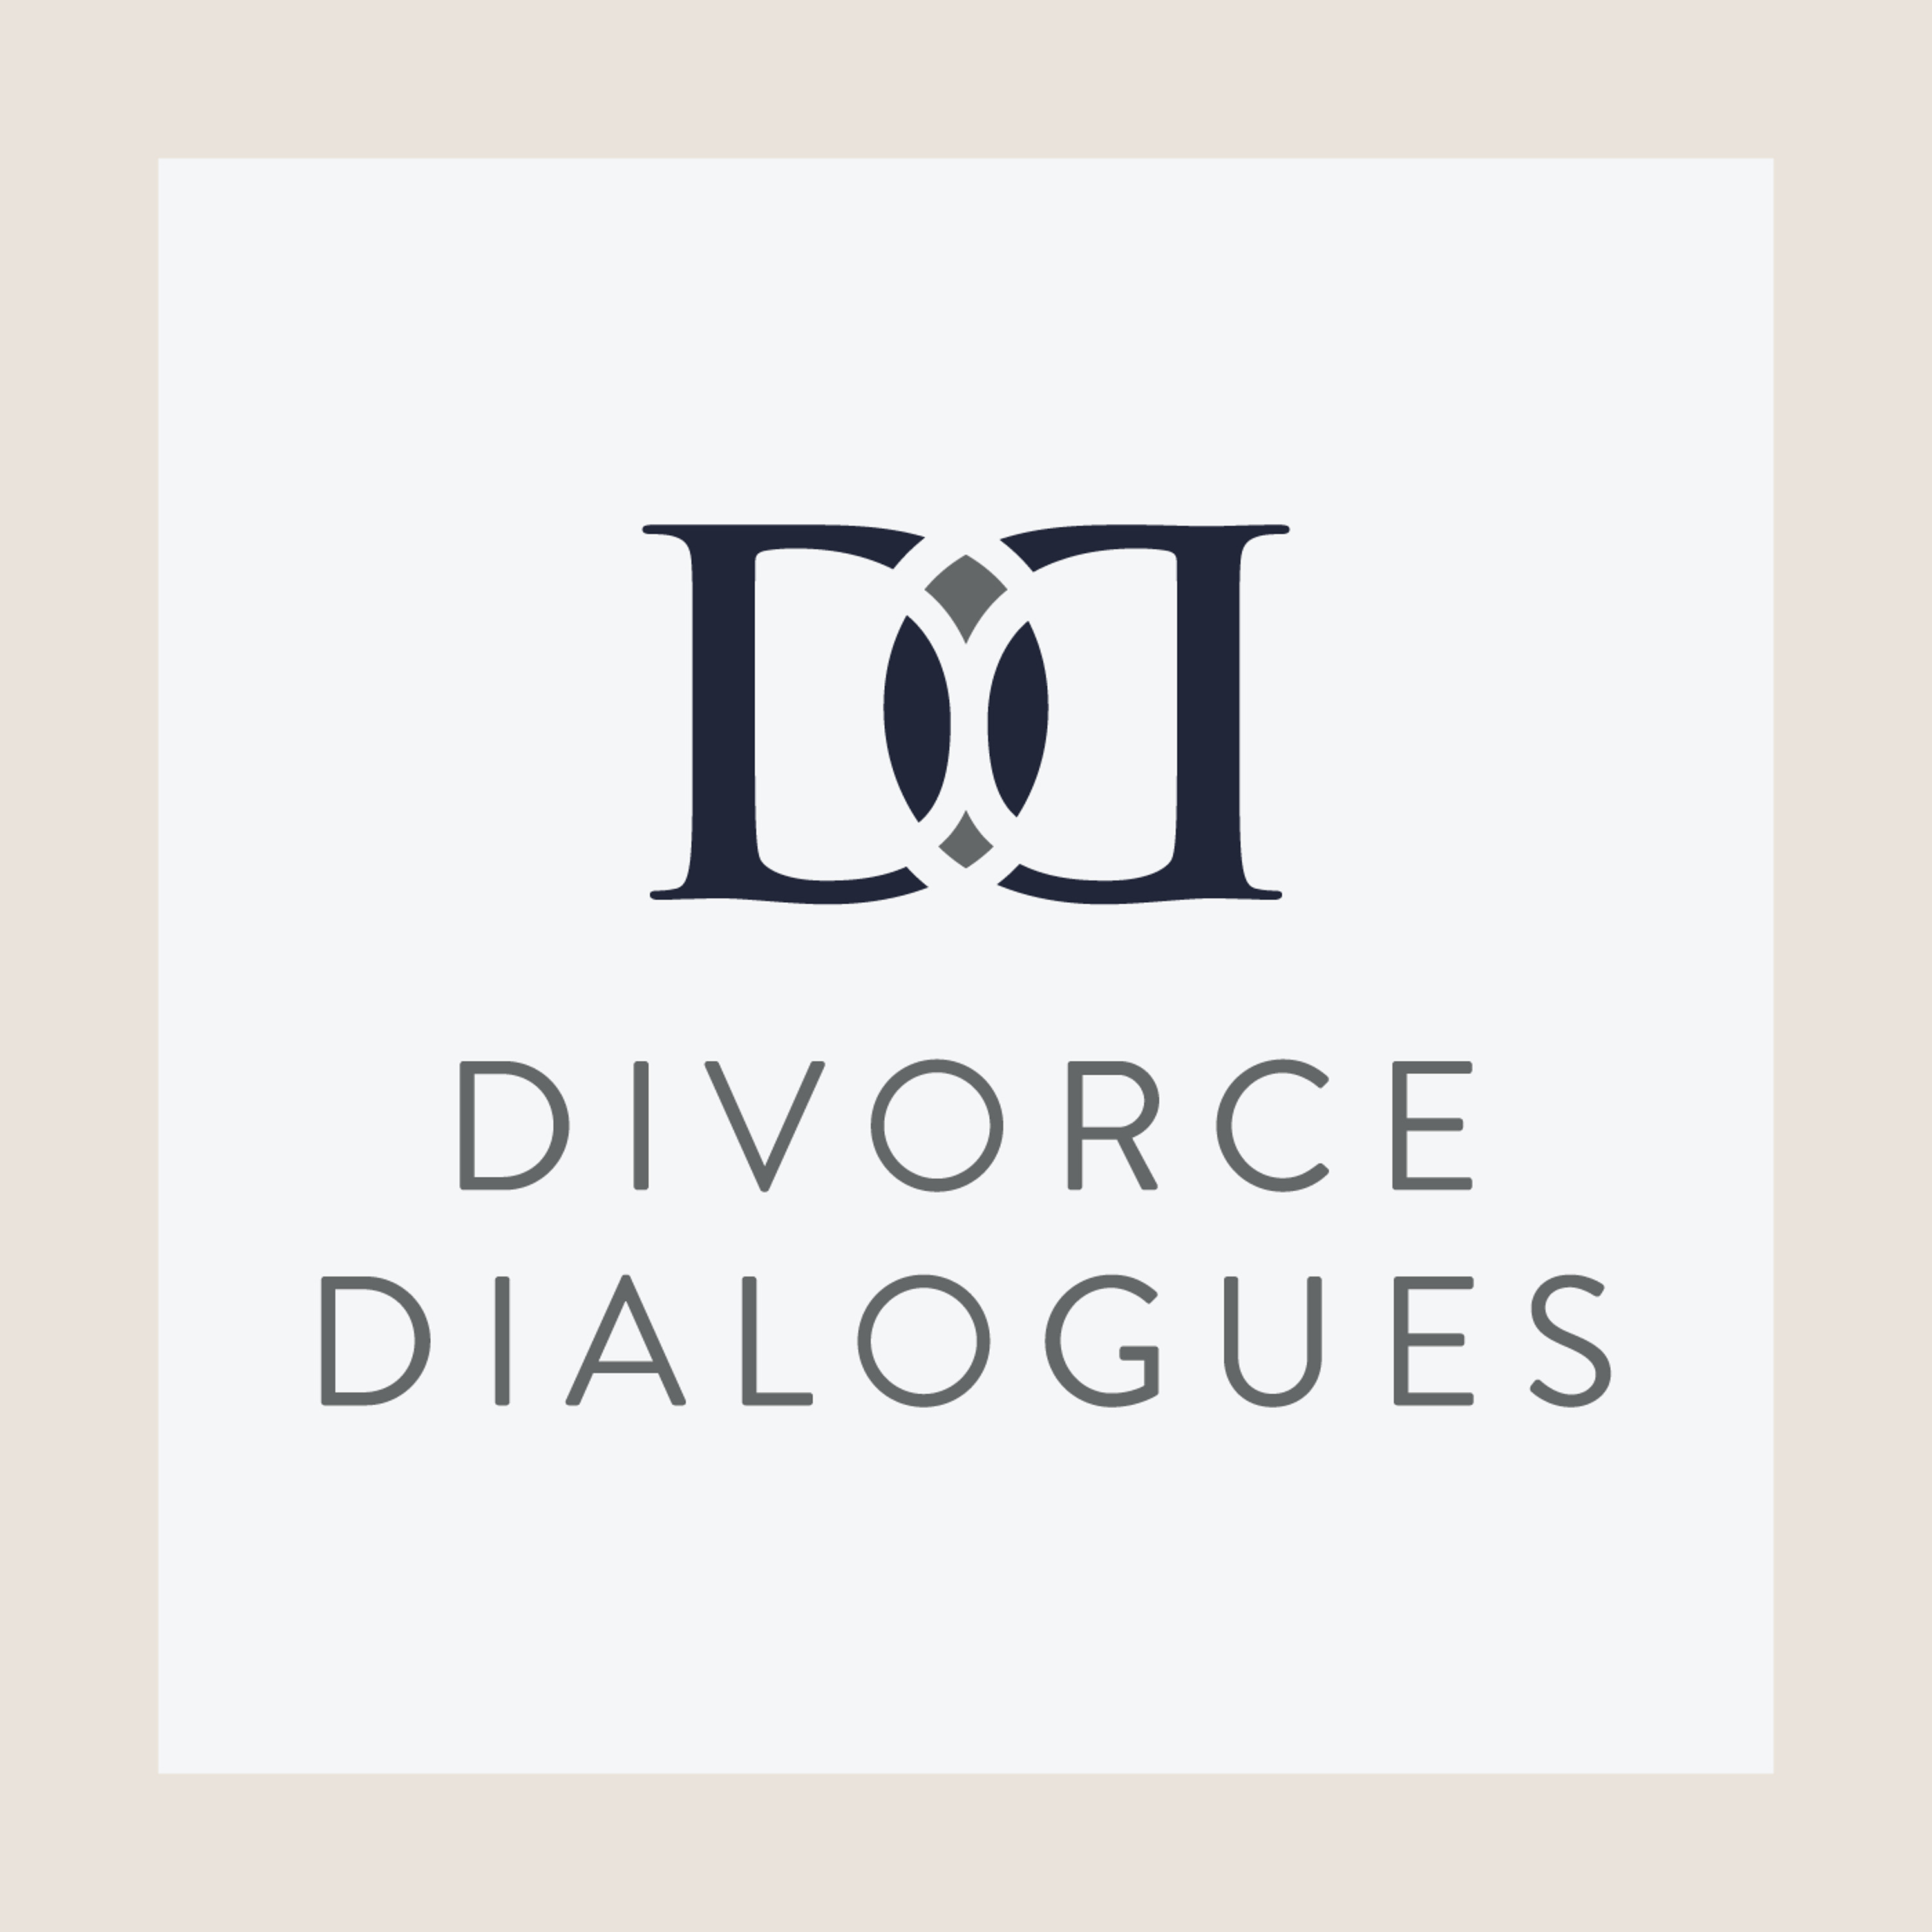 Divorce Dialogues - The Brain Science Behind Divorce with Dr. David Rock